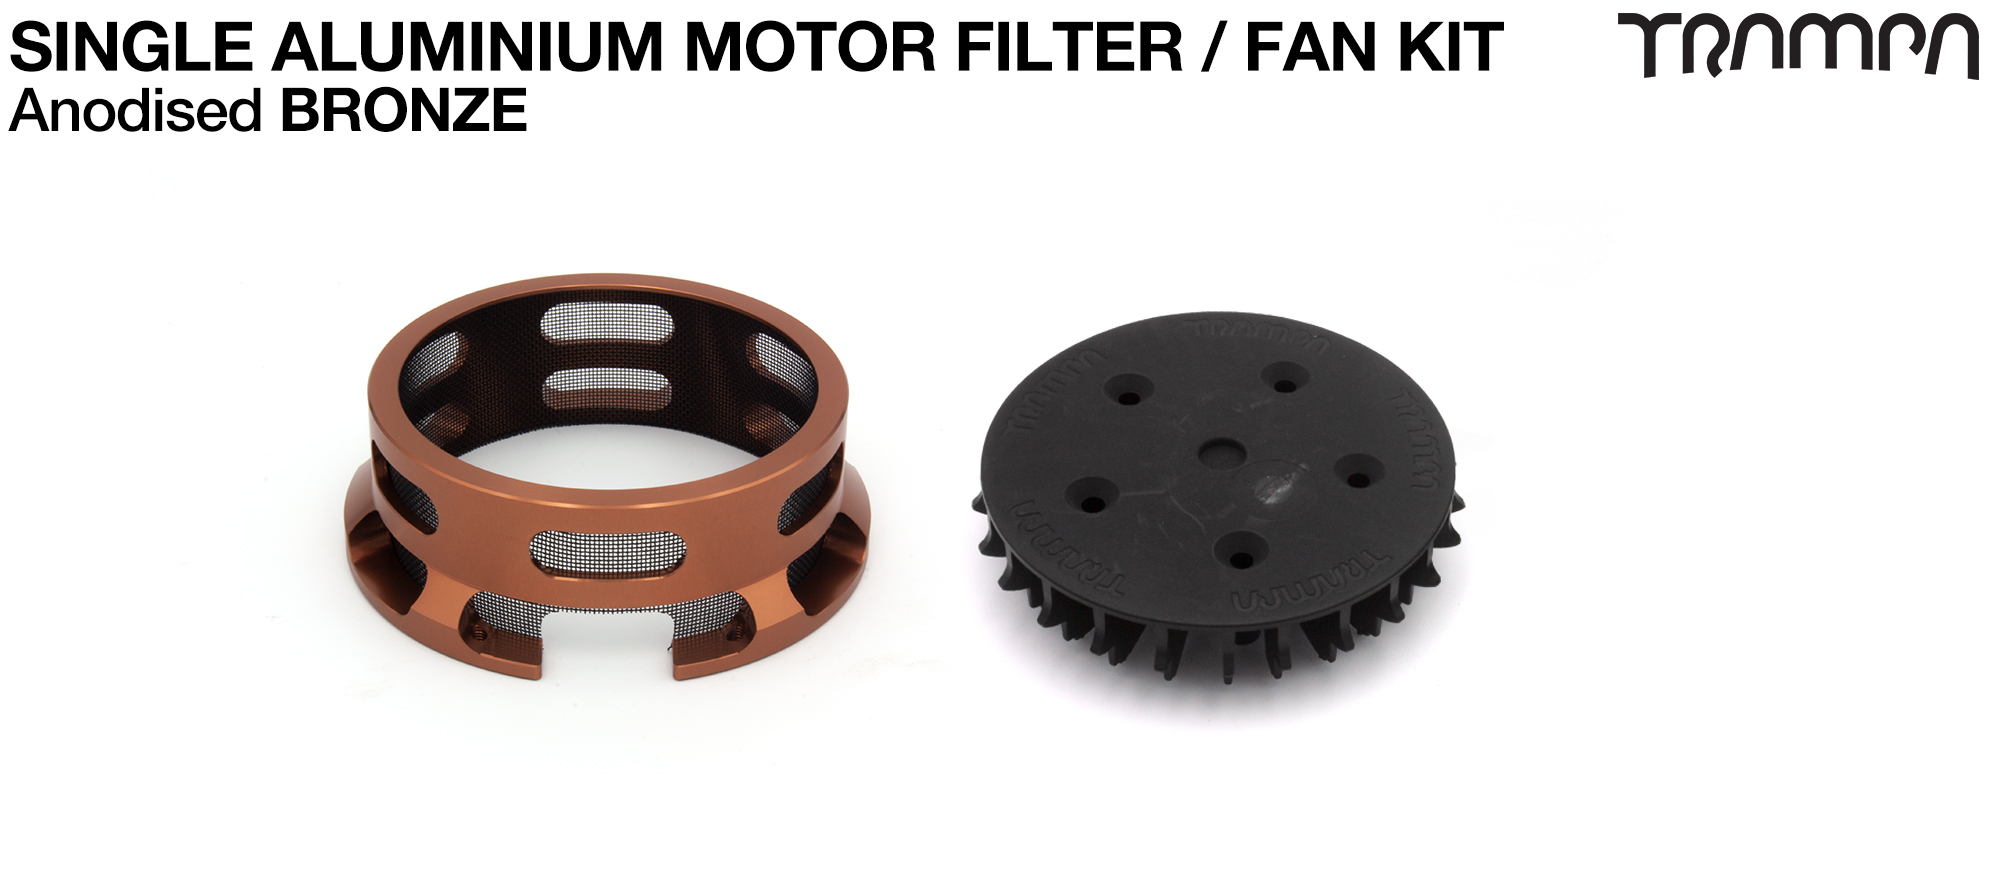 14FiFties BLACK Motor protection Housing with BRONZE particle Filter & Fan - SINGLE